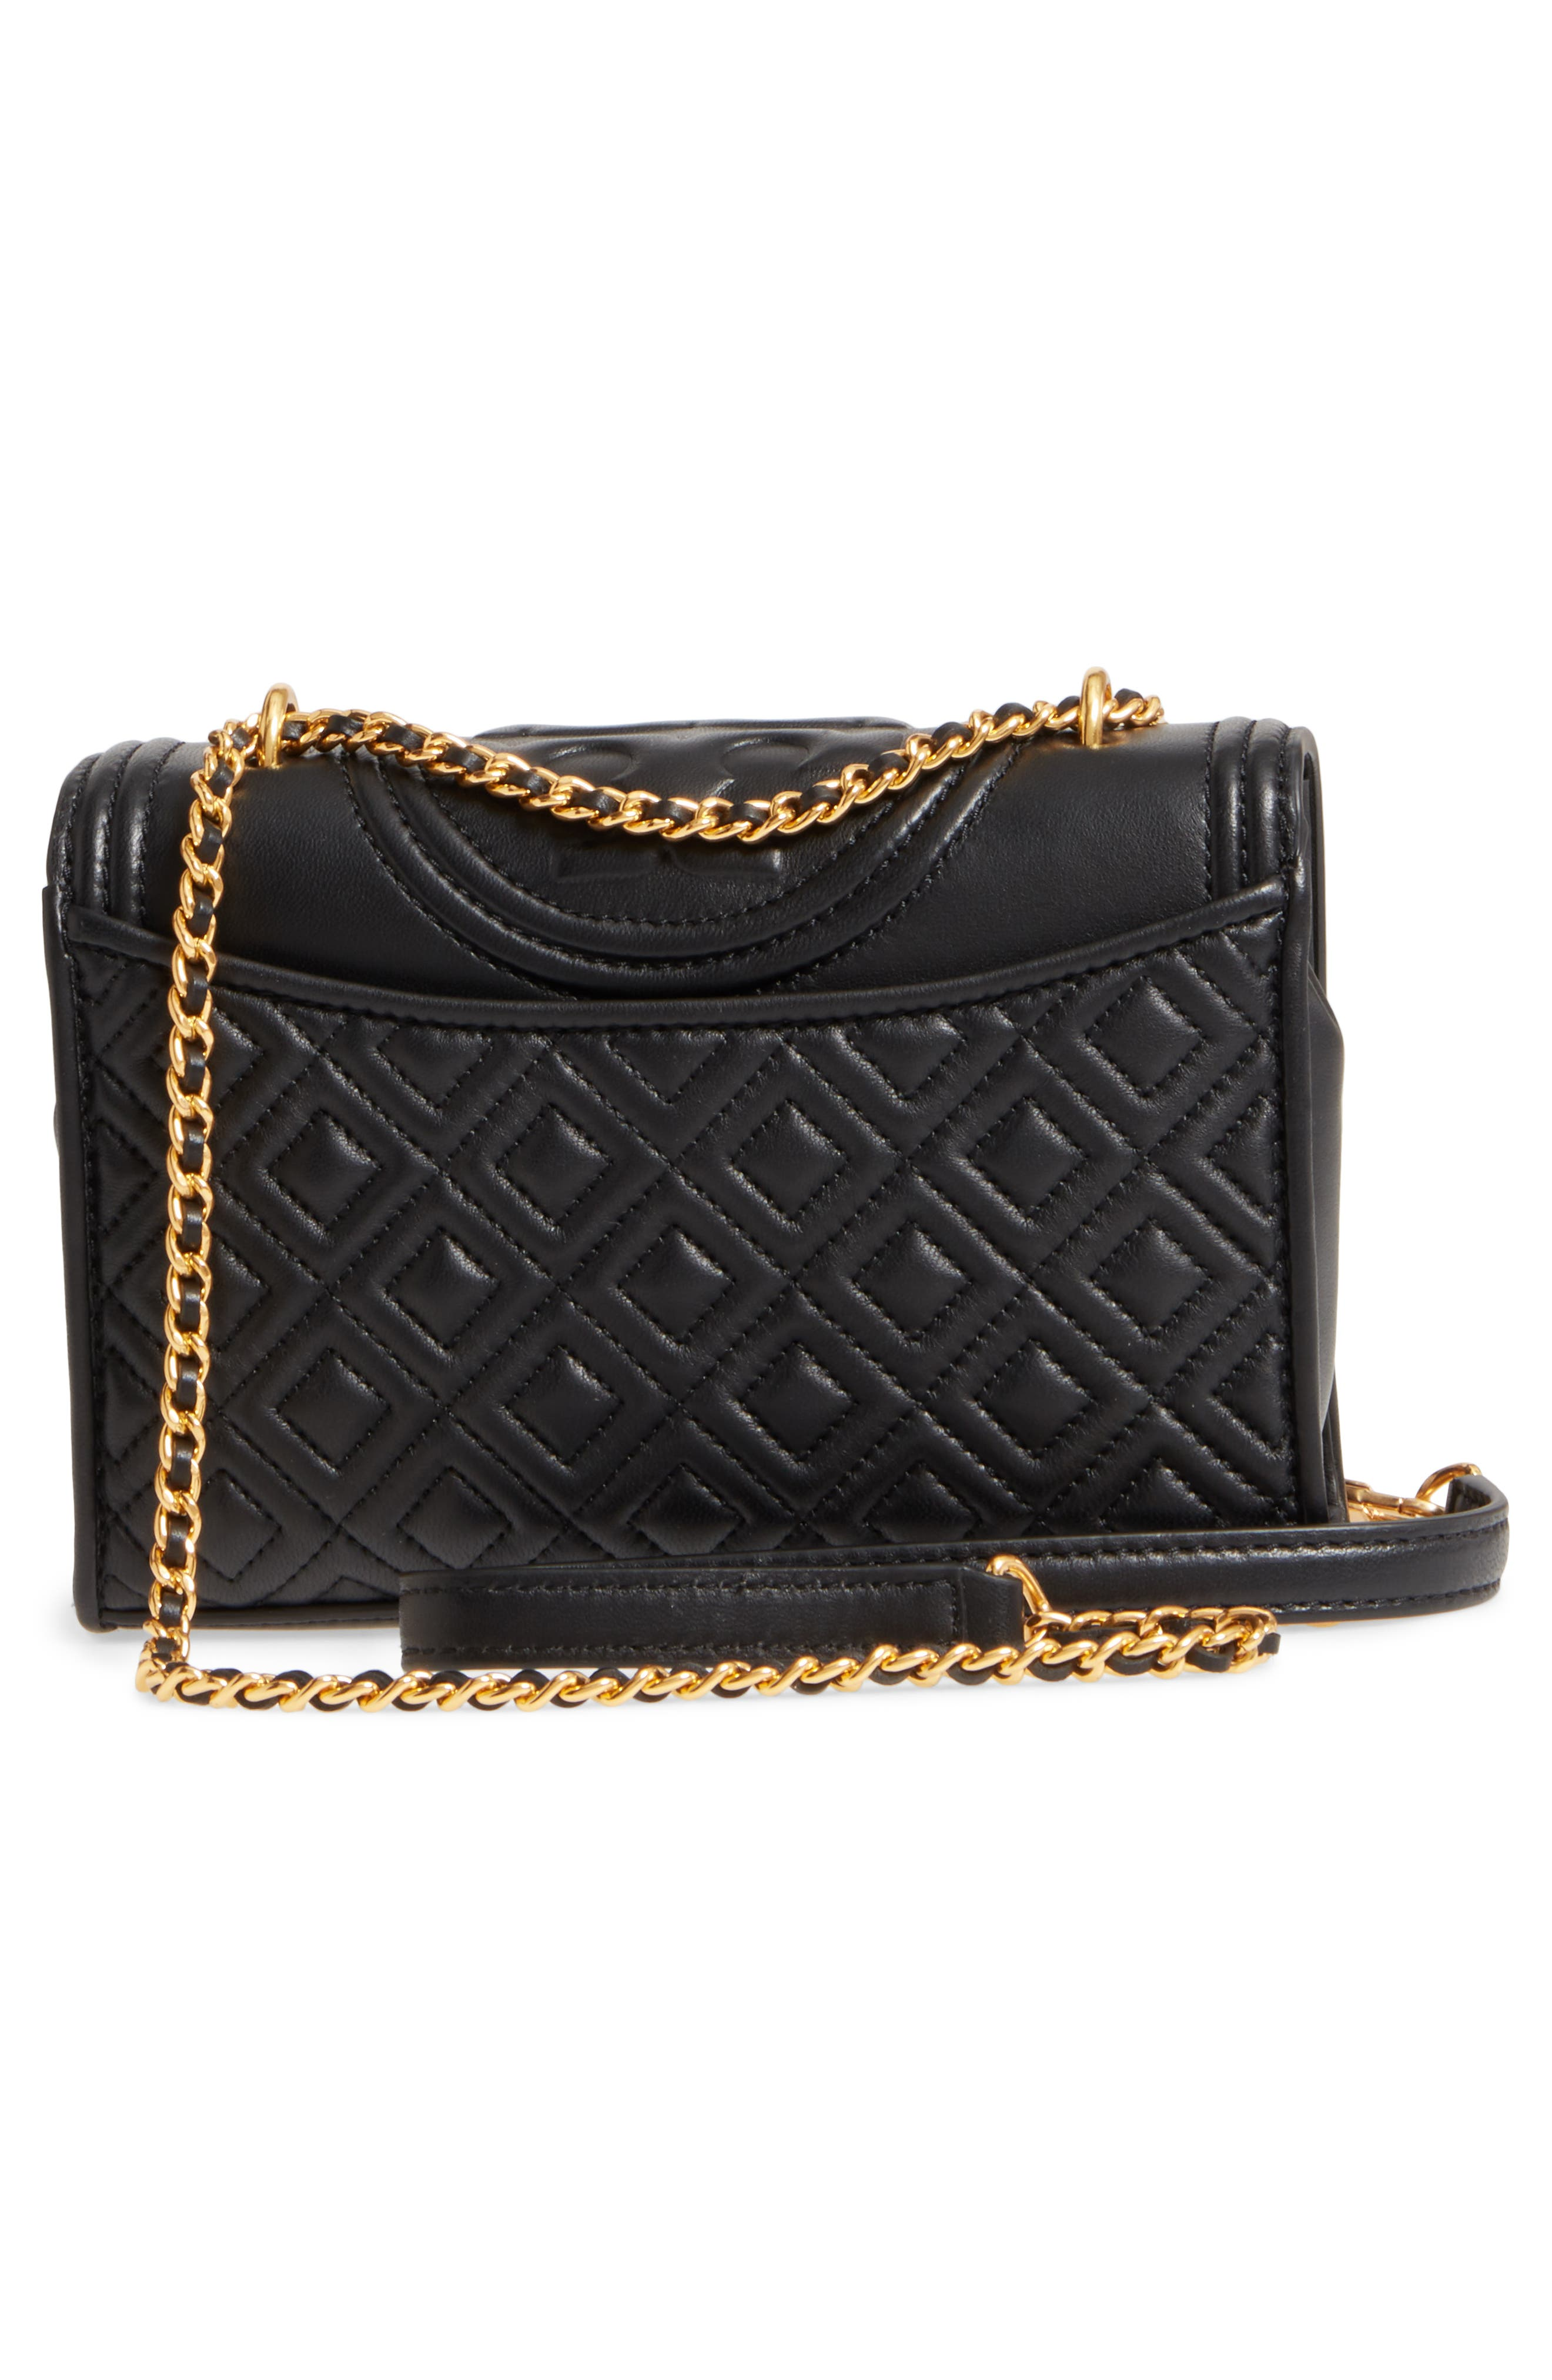 TORY BURCH, Small Fleming Leather Convertible Shoulder Bag, Alternate thumbnail 4, color, BLACK